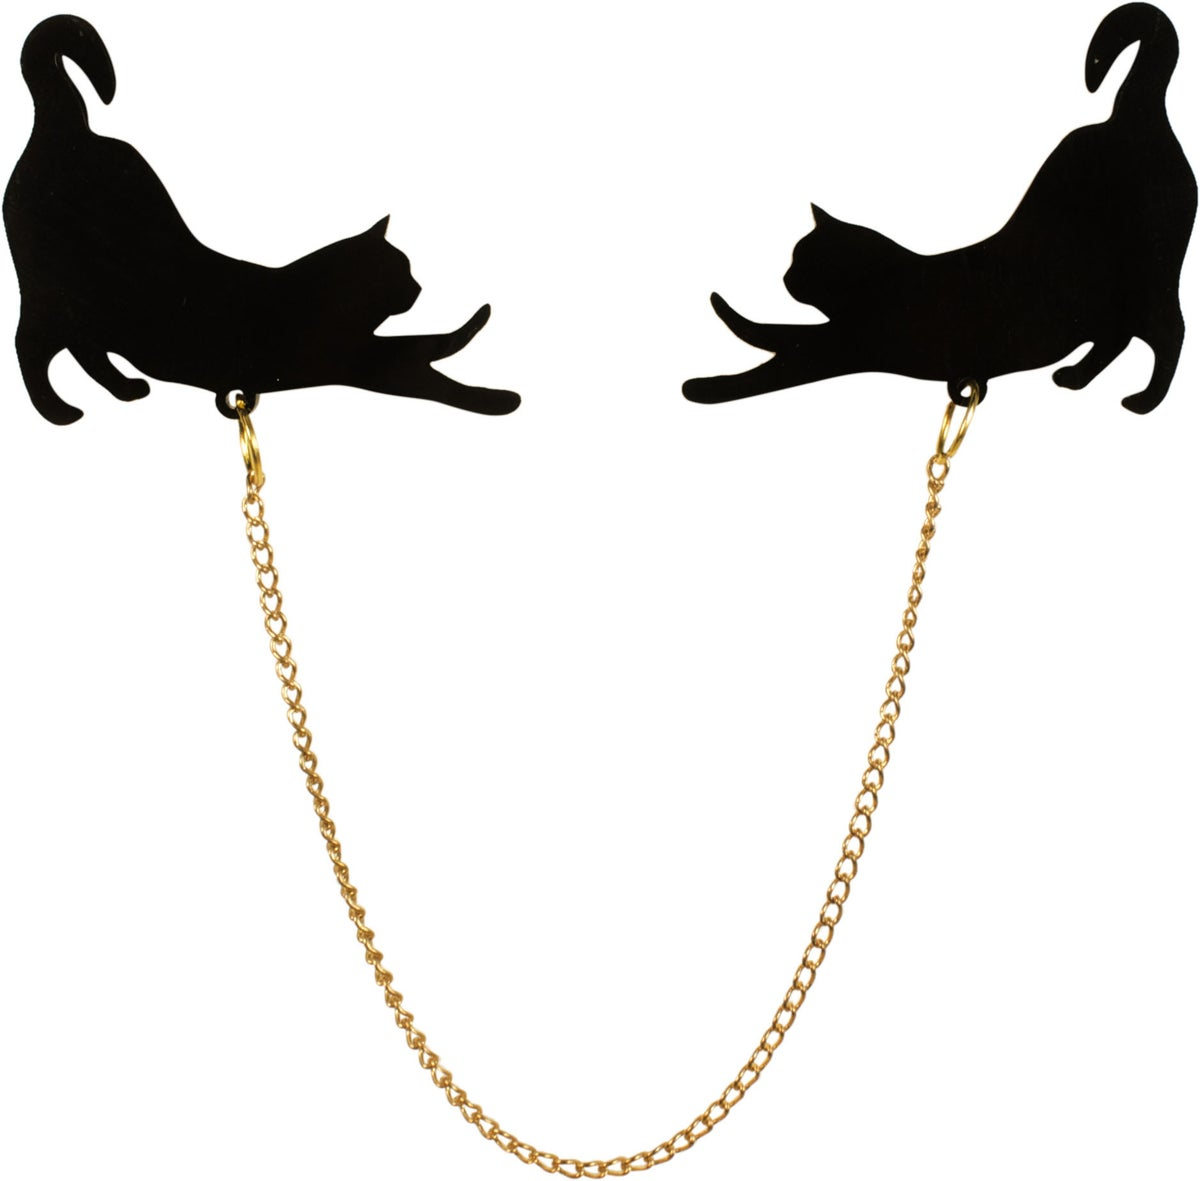 Image of Stretching Cat Silhouette Collar Pins